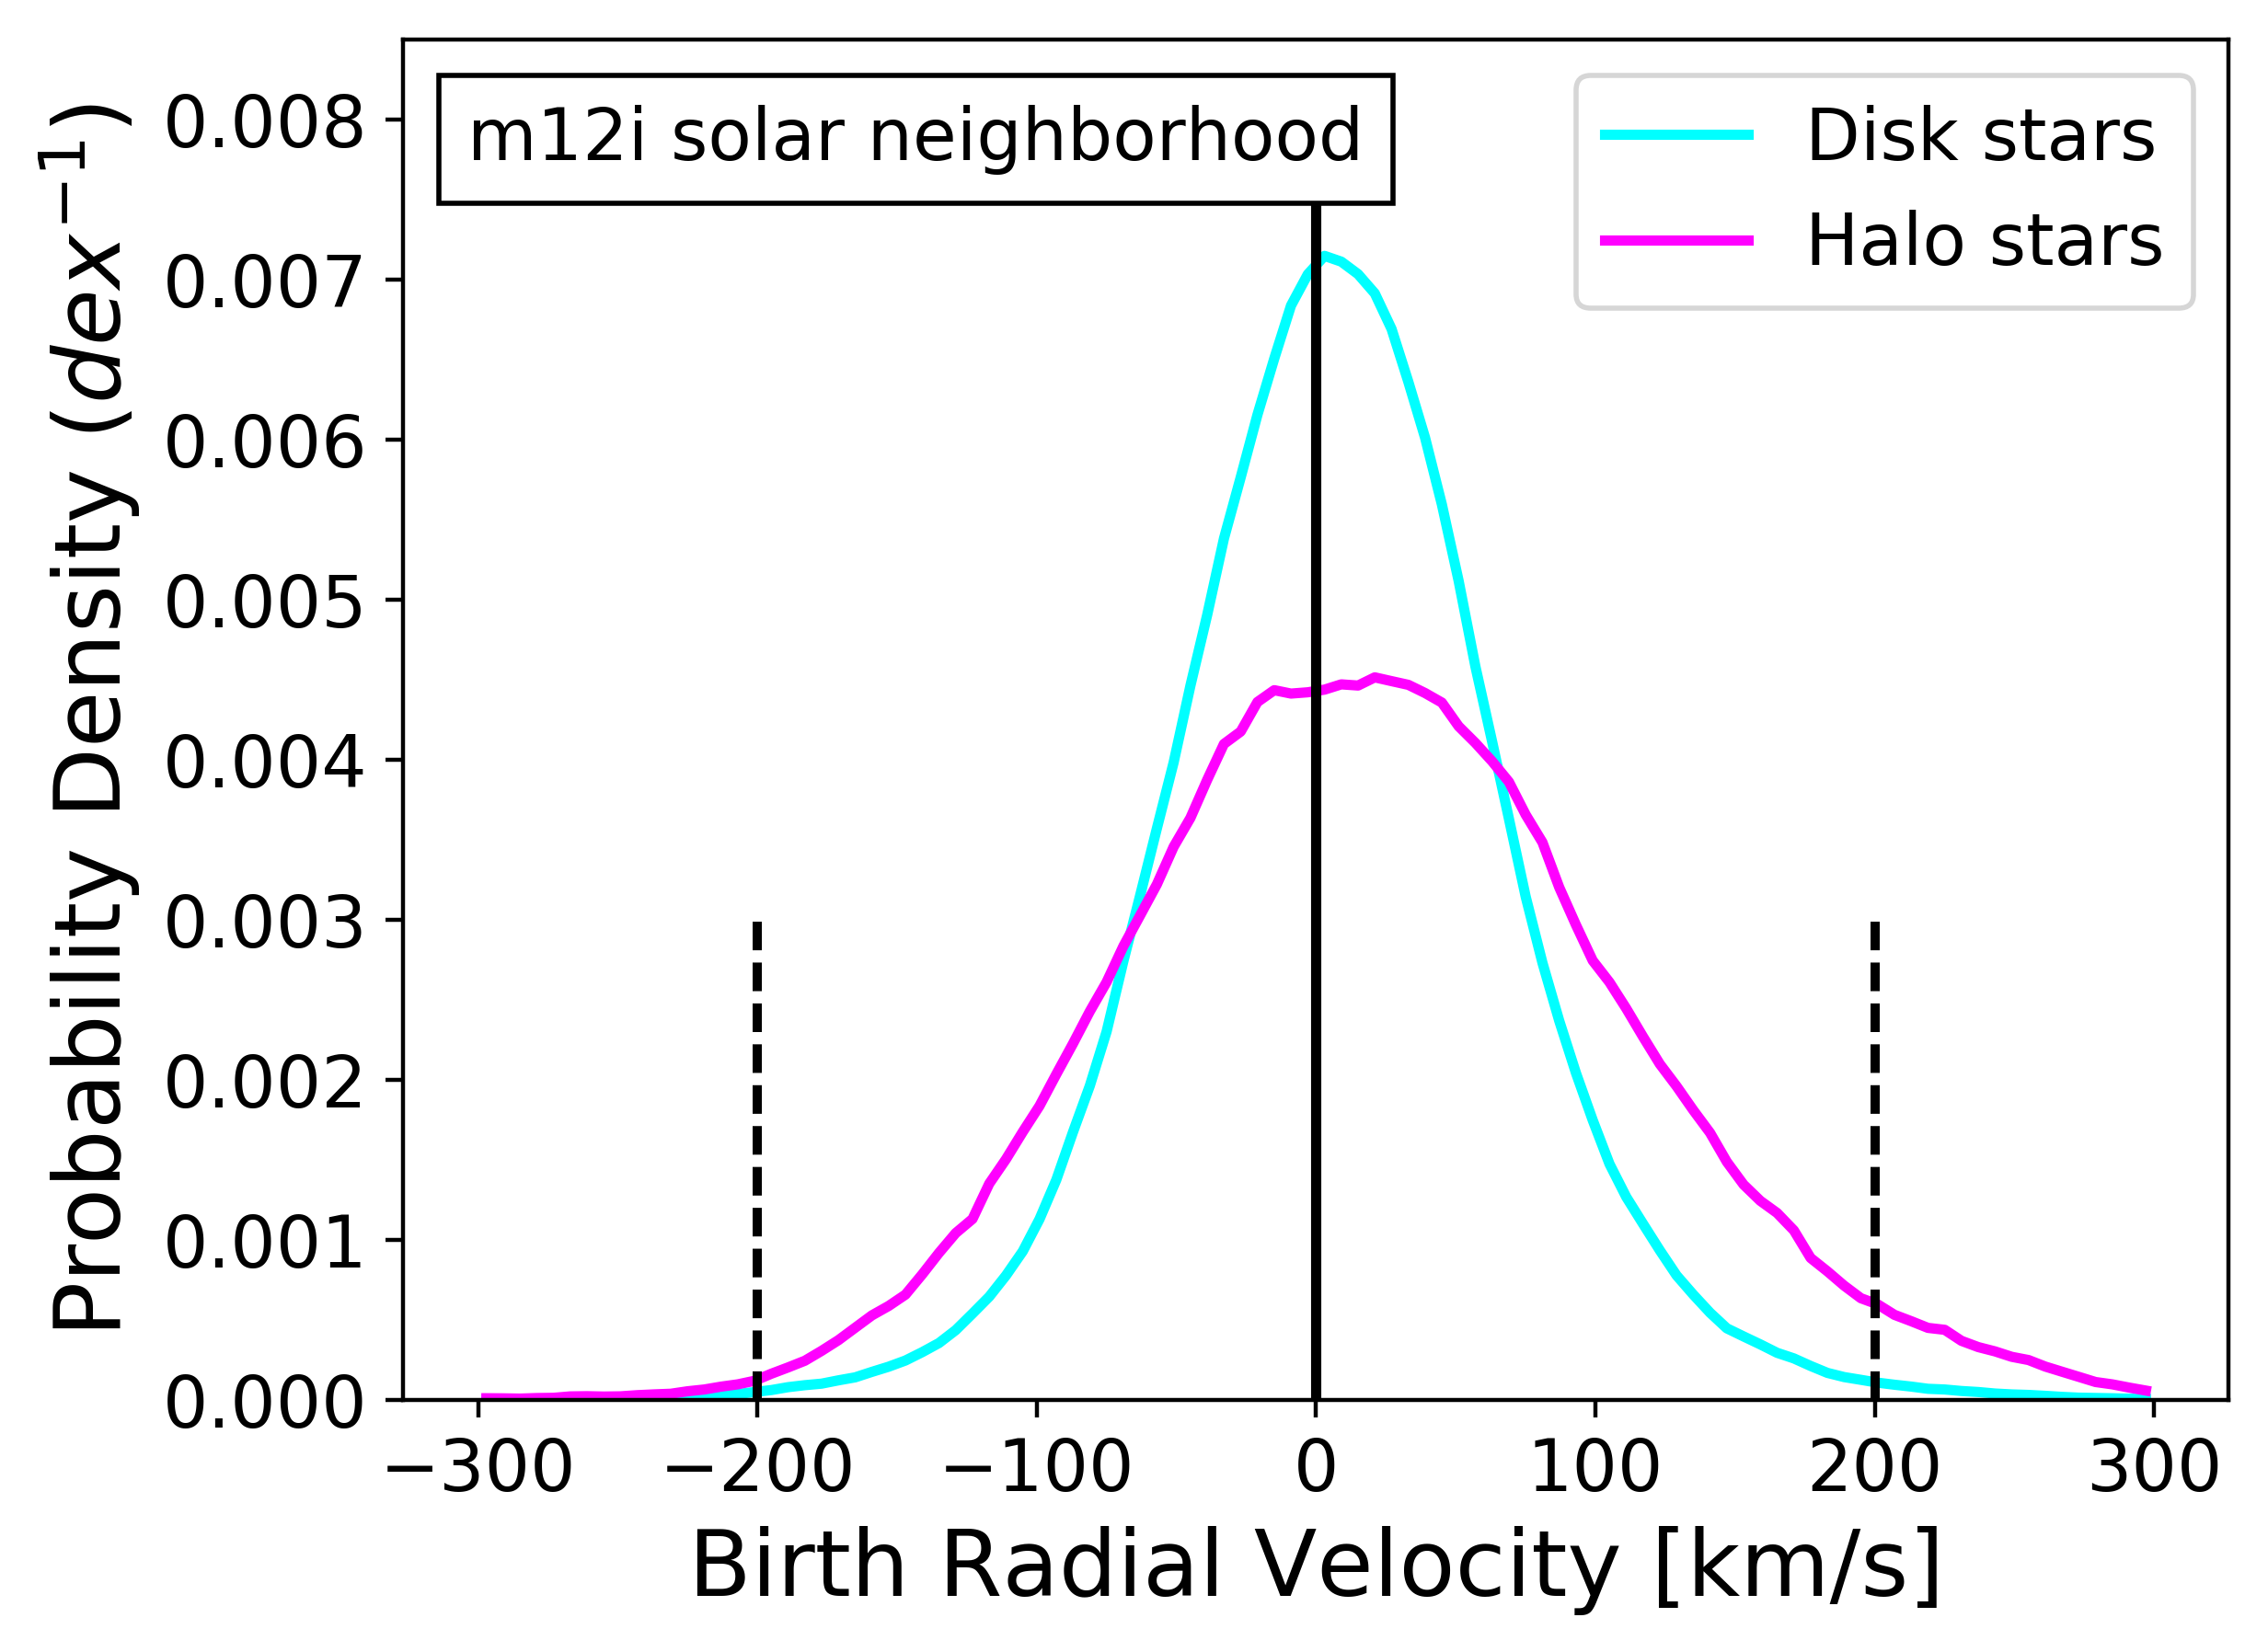 Metallicity distributions for solar neighborhood disk stars (cyan) and halo stars (magenta) in